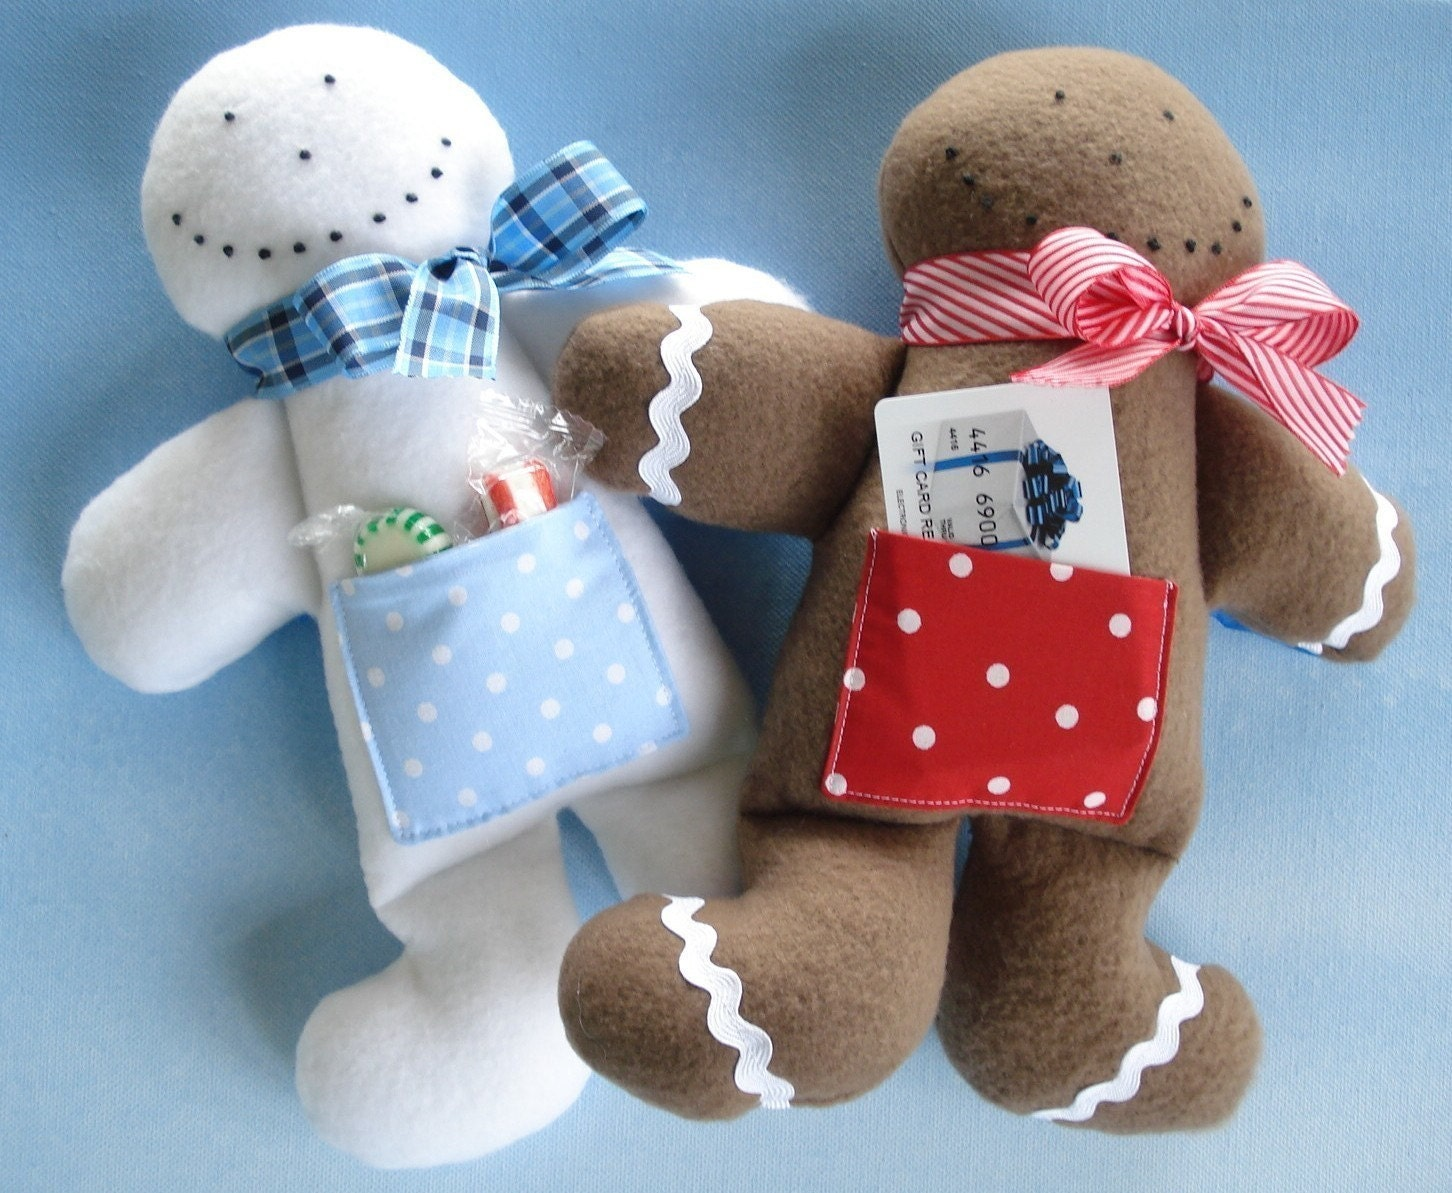 SALE - PDF ePATTERN for Gingerbread Man and Snowman Doll-Gift Holders